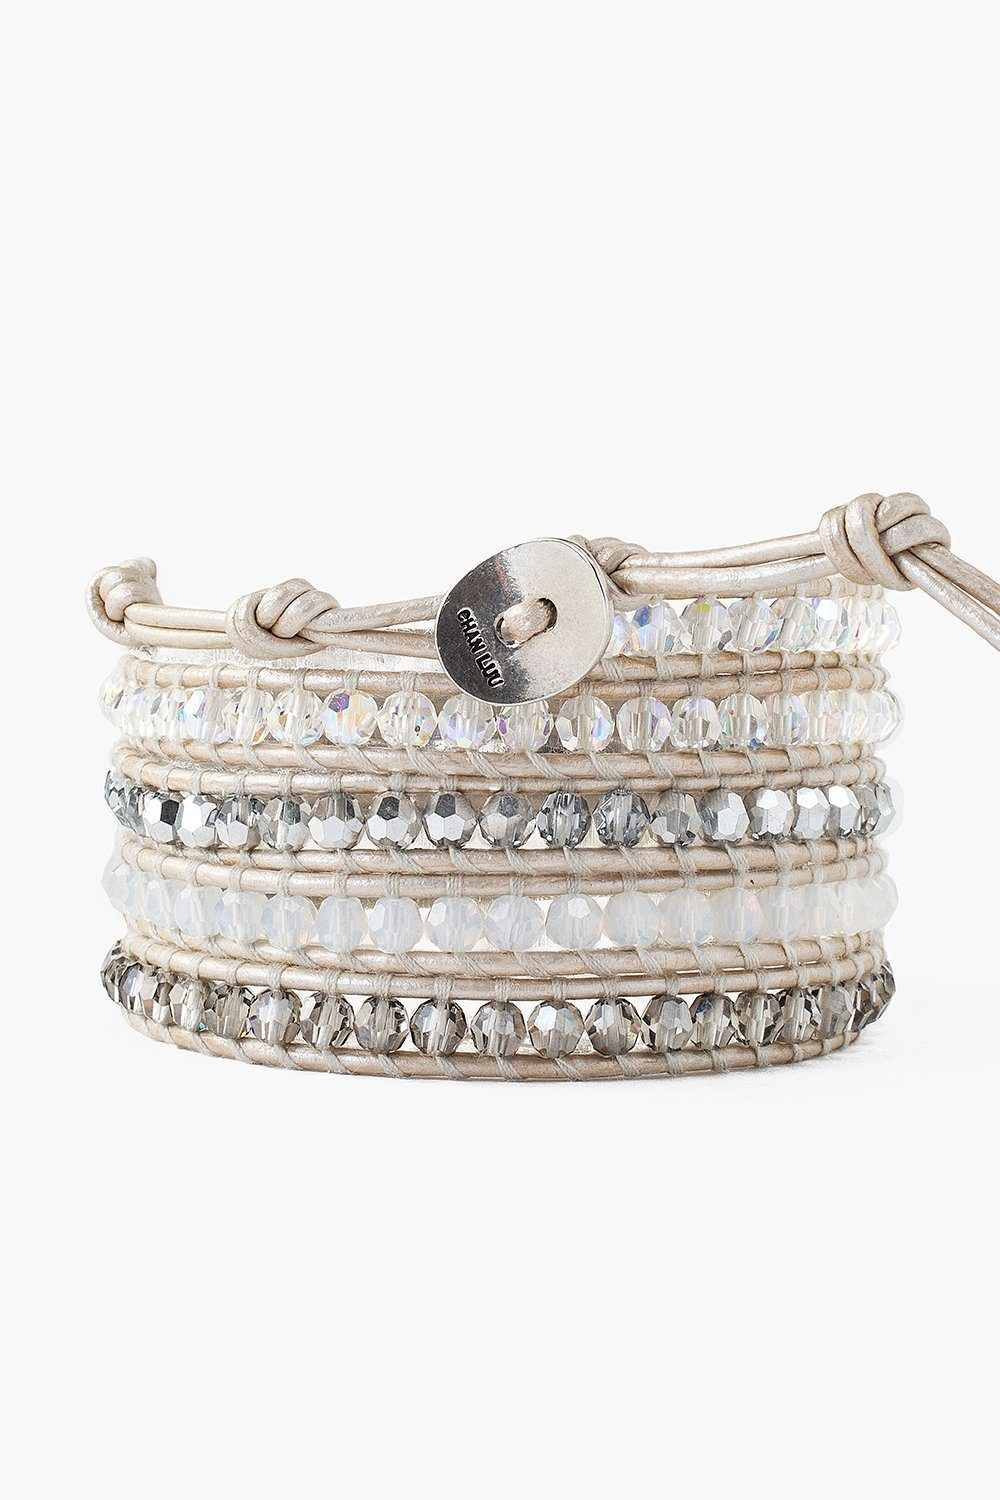 Crystal and White Opal Mix Wrap Bracelet on Pearl Leather